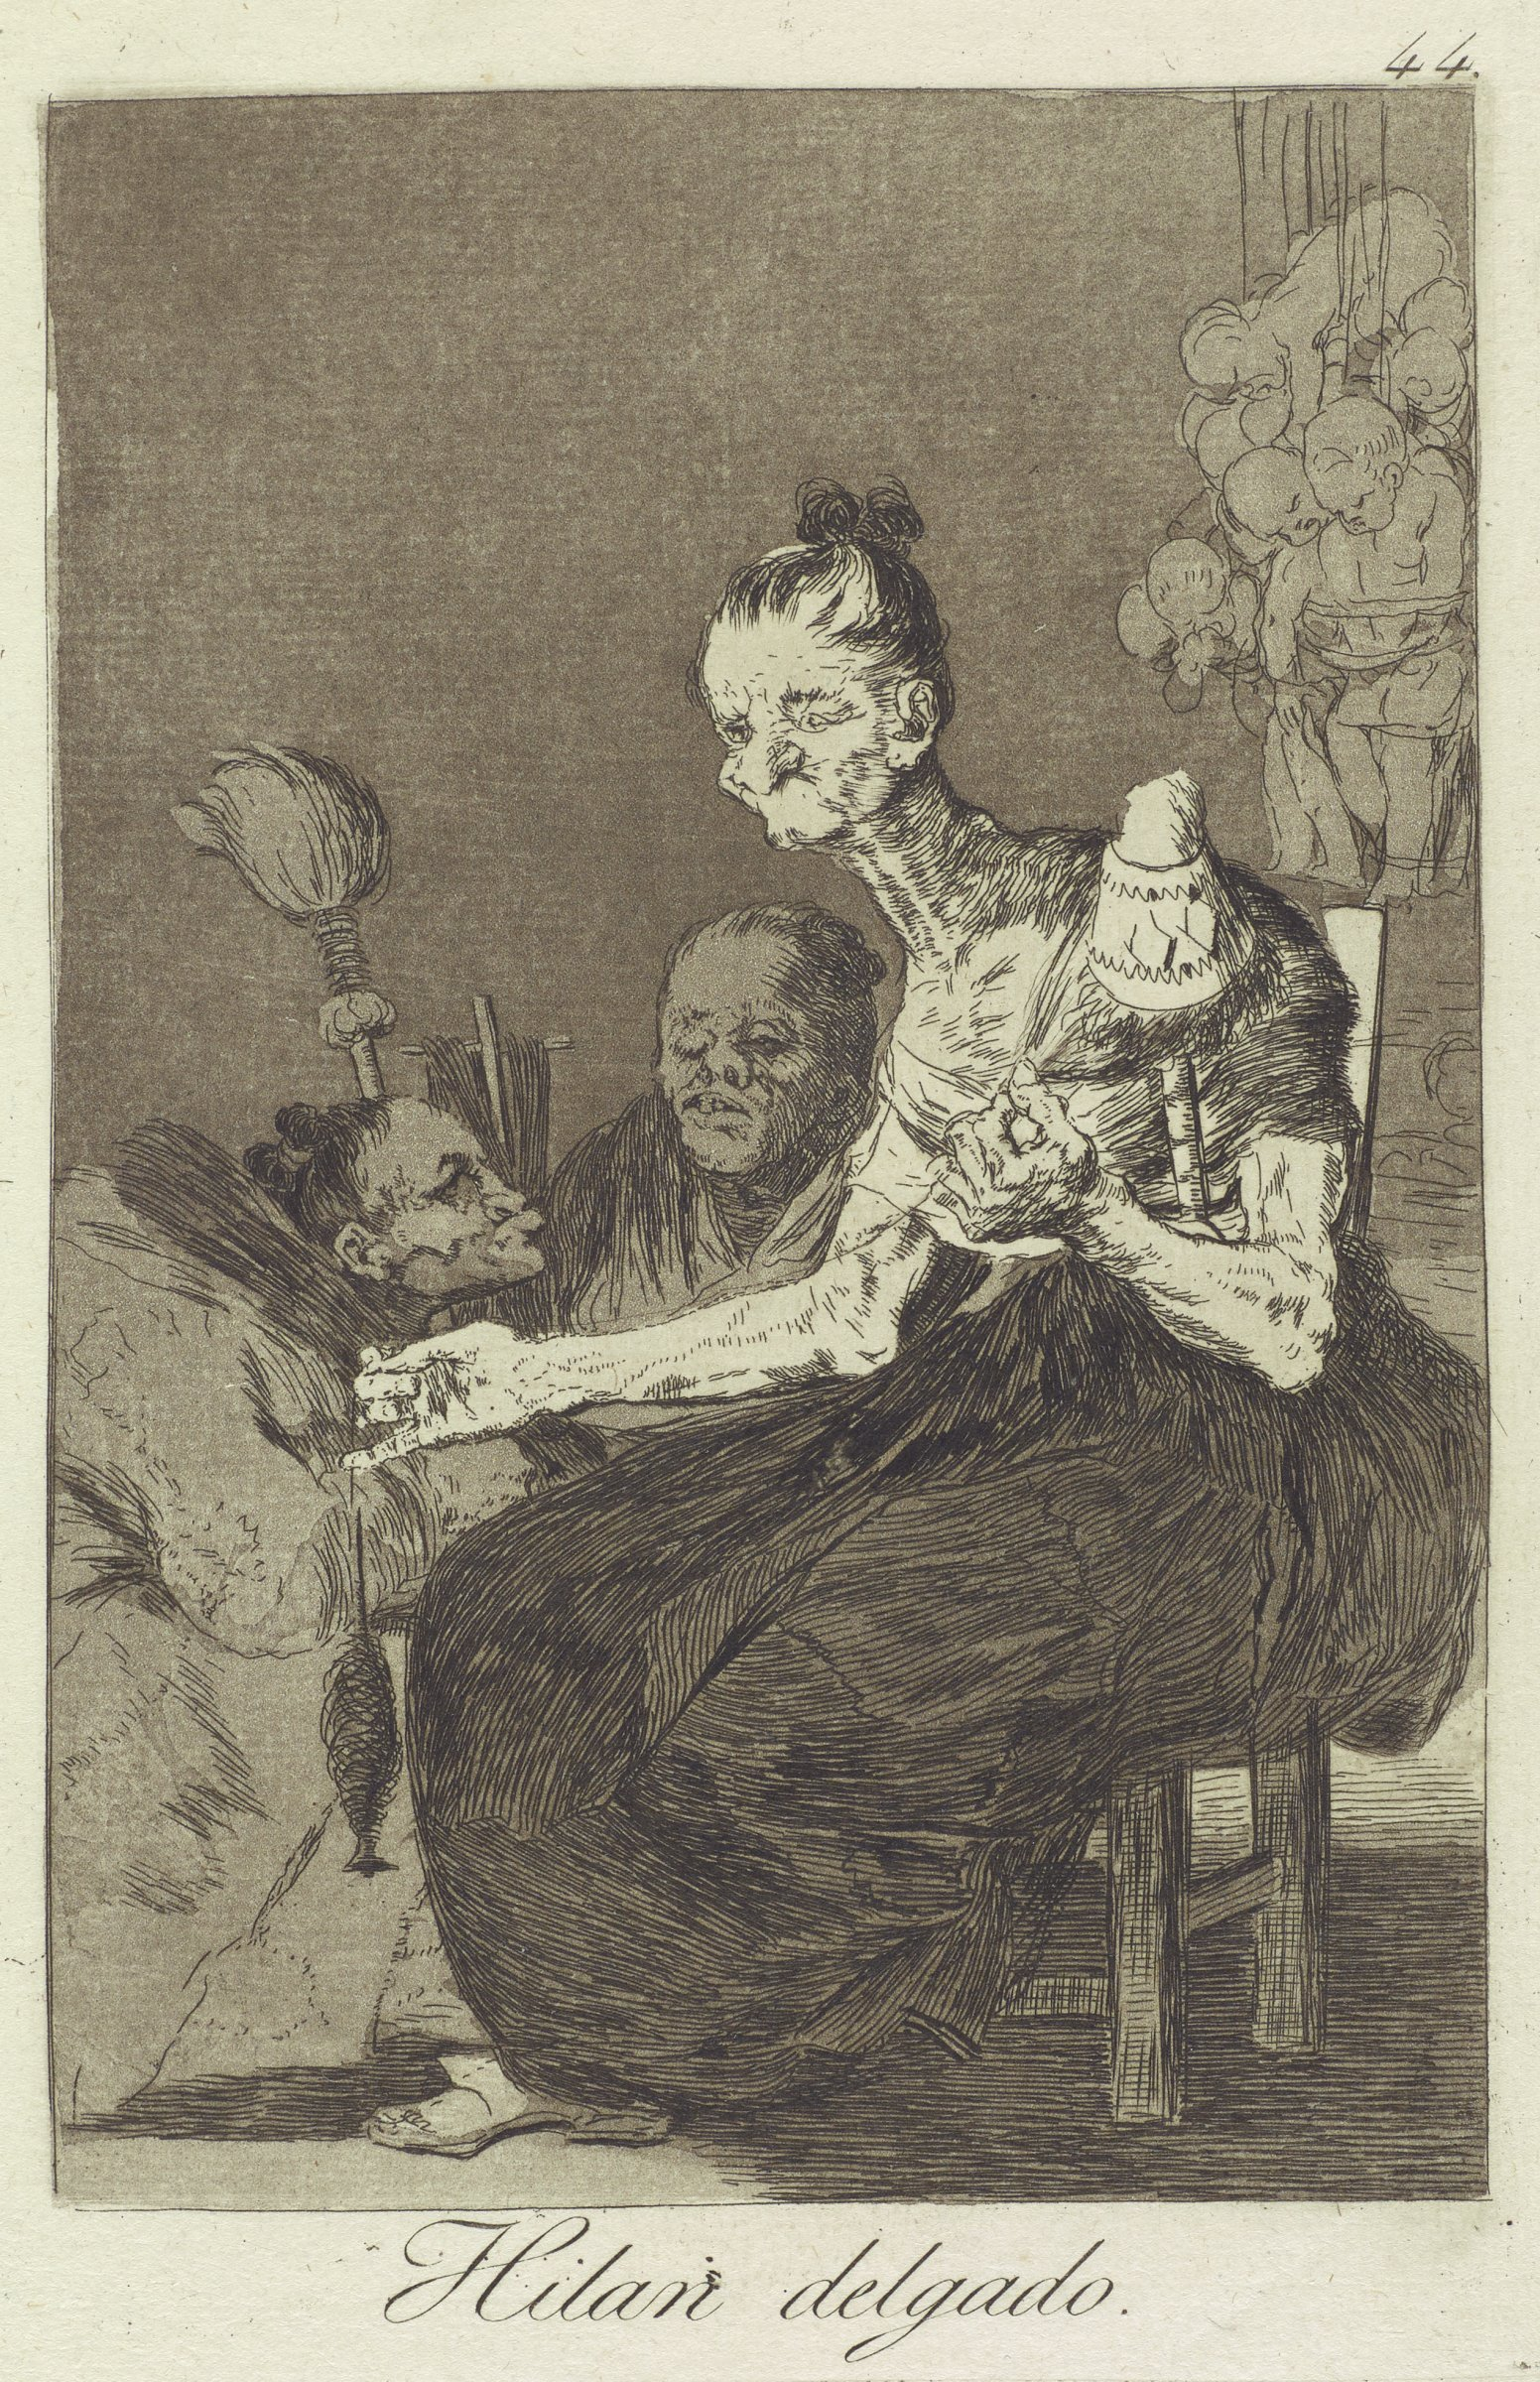 Three women with grotesque appearances spin thread. One woman sits in a chair and two women crouch behind her. In the upper right background hangs a group of babies.